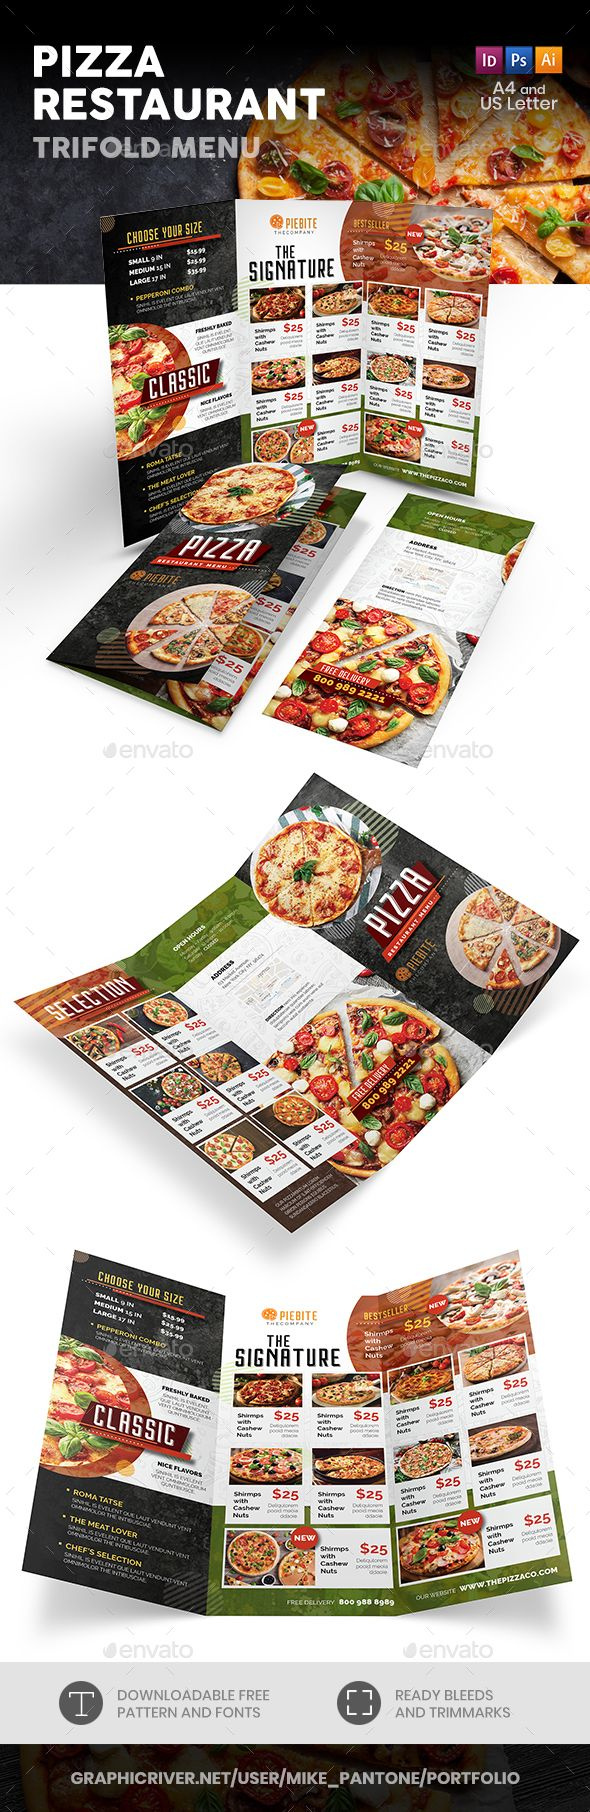 Pizza Restaurant Menu Templates